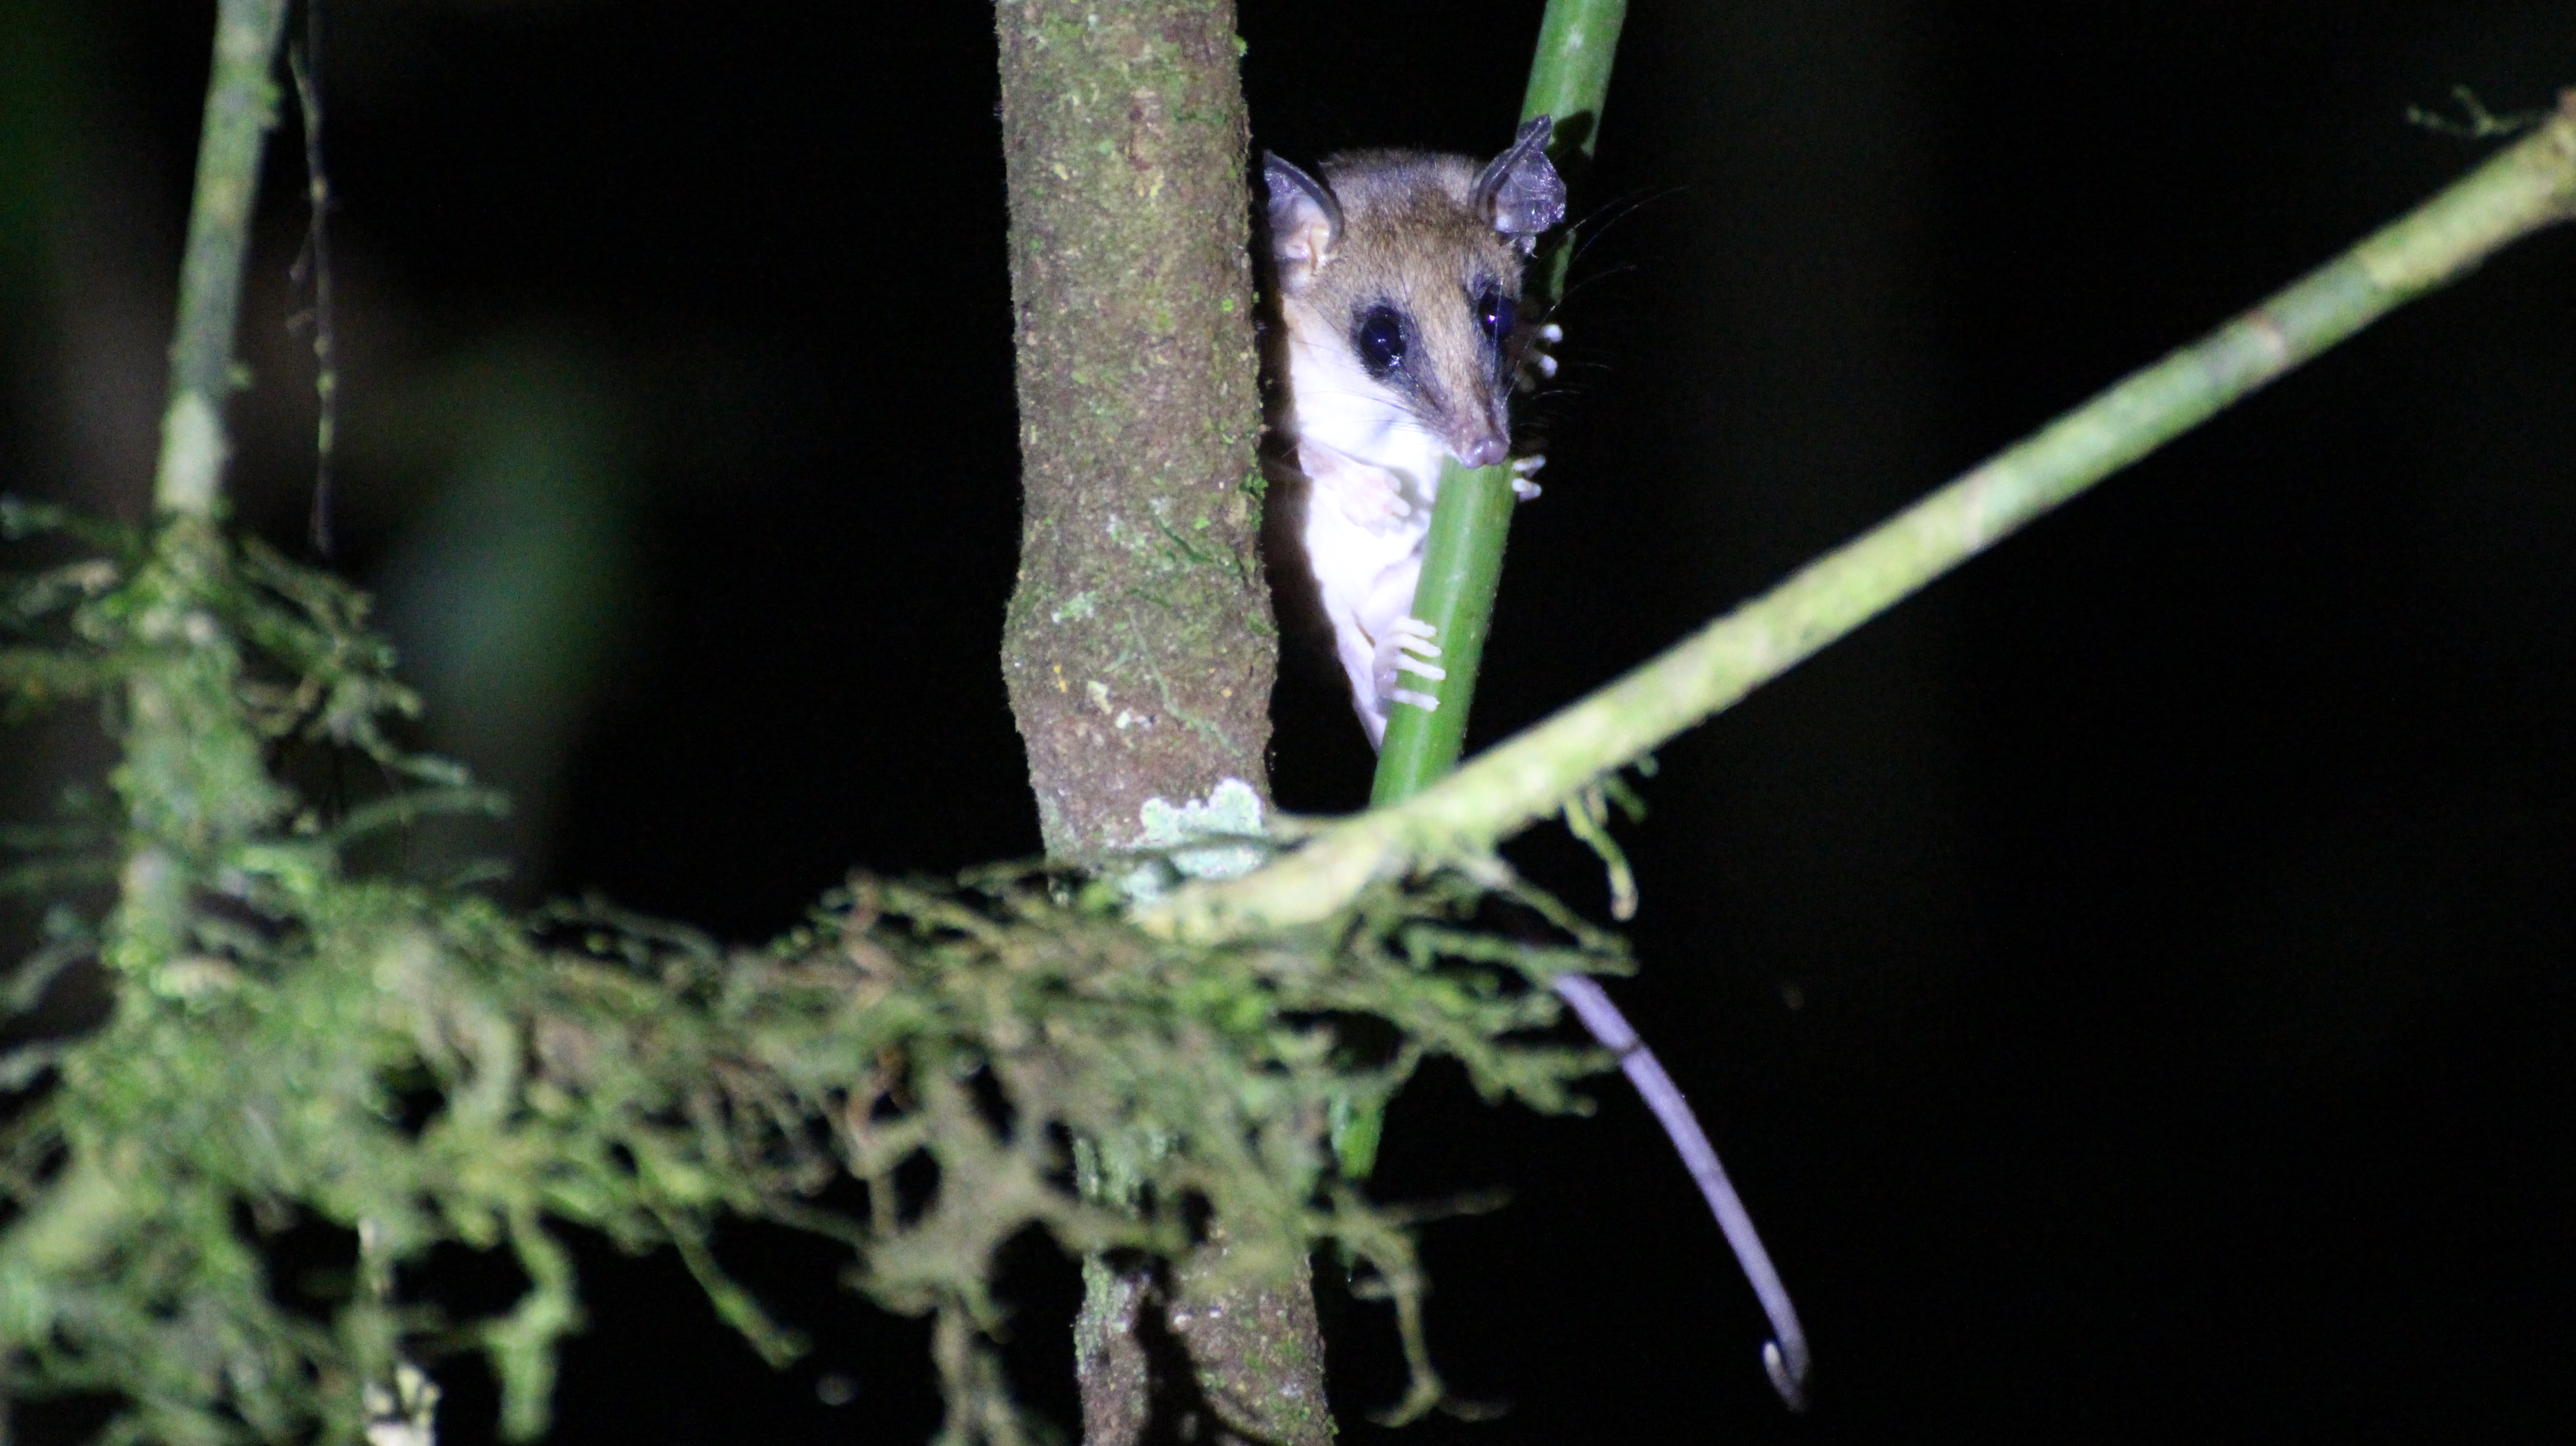 I think I already had it ID'ed but my notes are in a different country right now. Maybe Rufous Mouse Opossum?